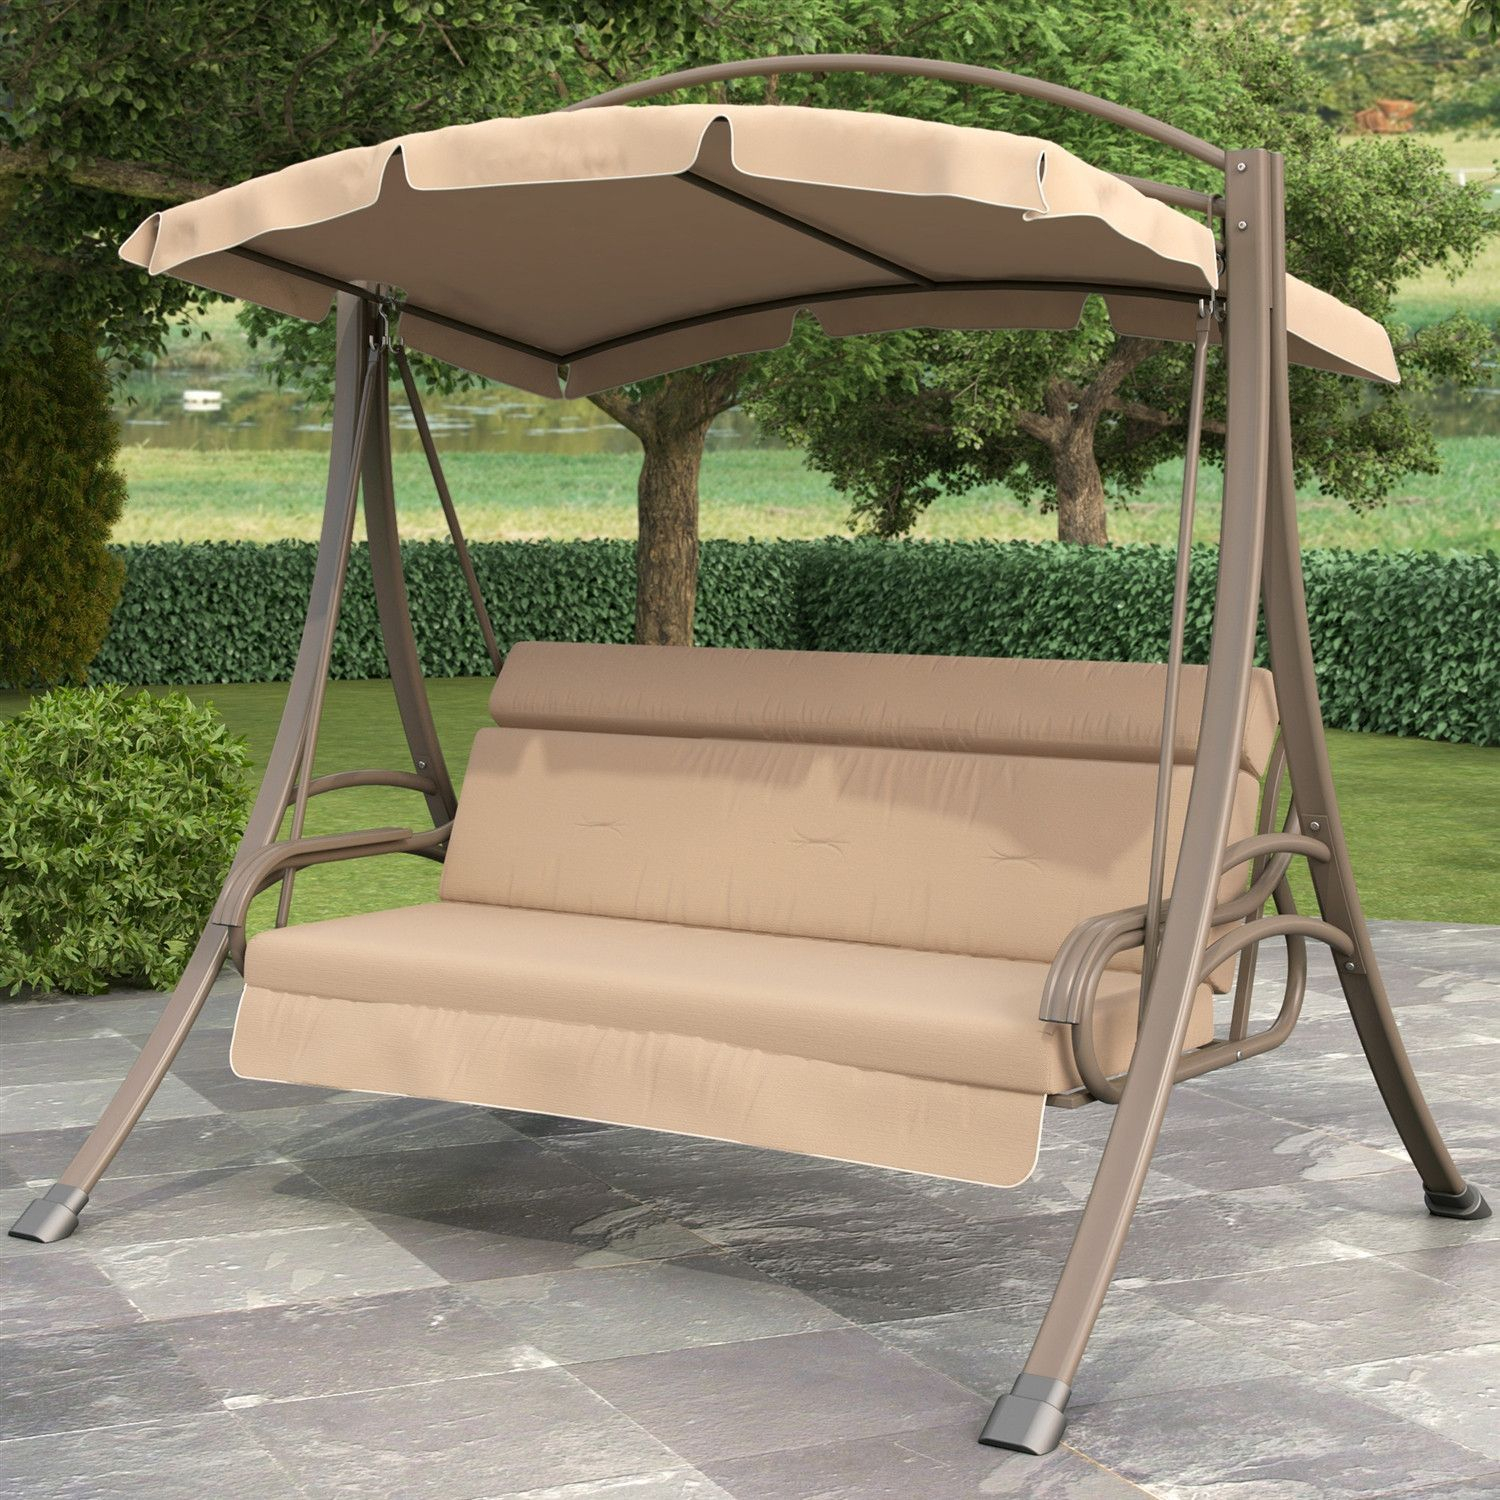 3 Person Outdoor Porch Swing With Canopy In Beige Tan Brown Throughout 3 Person Brown Steel Outdoor Swings (View 8 of 25)